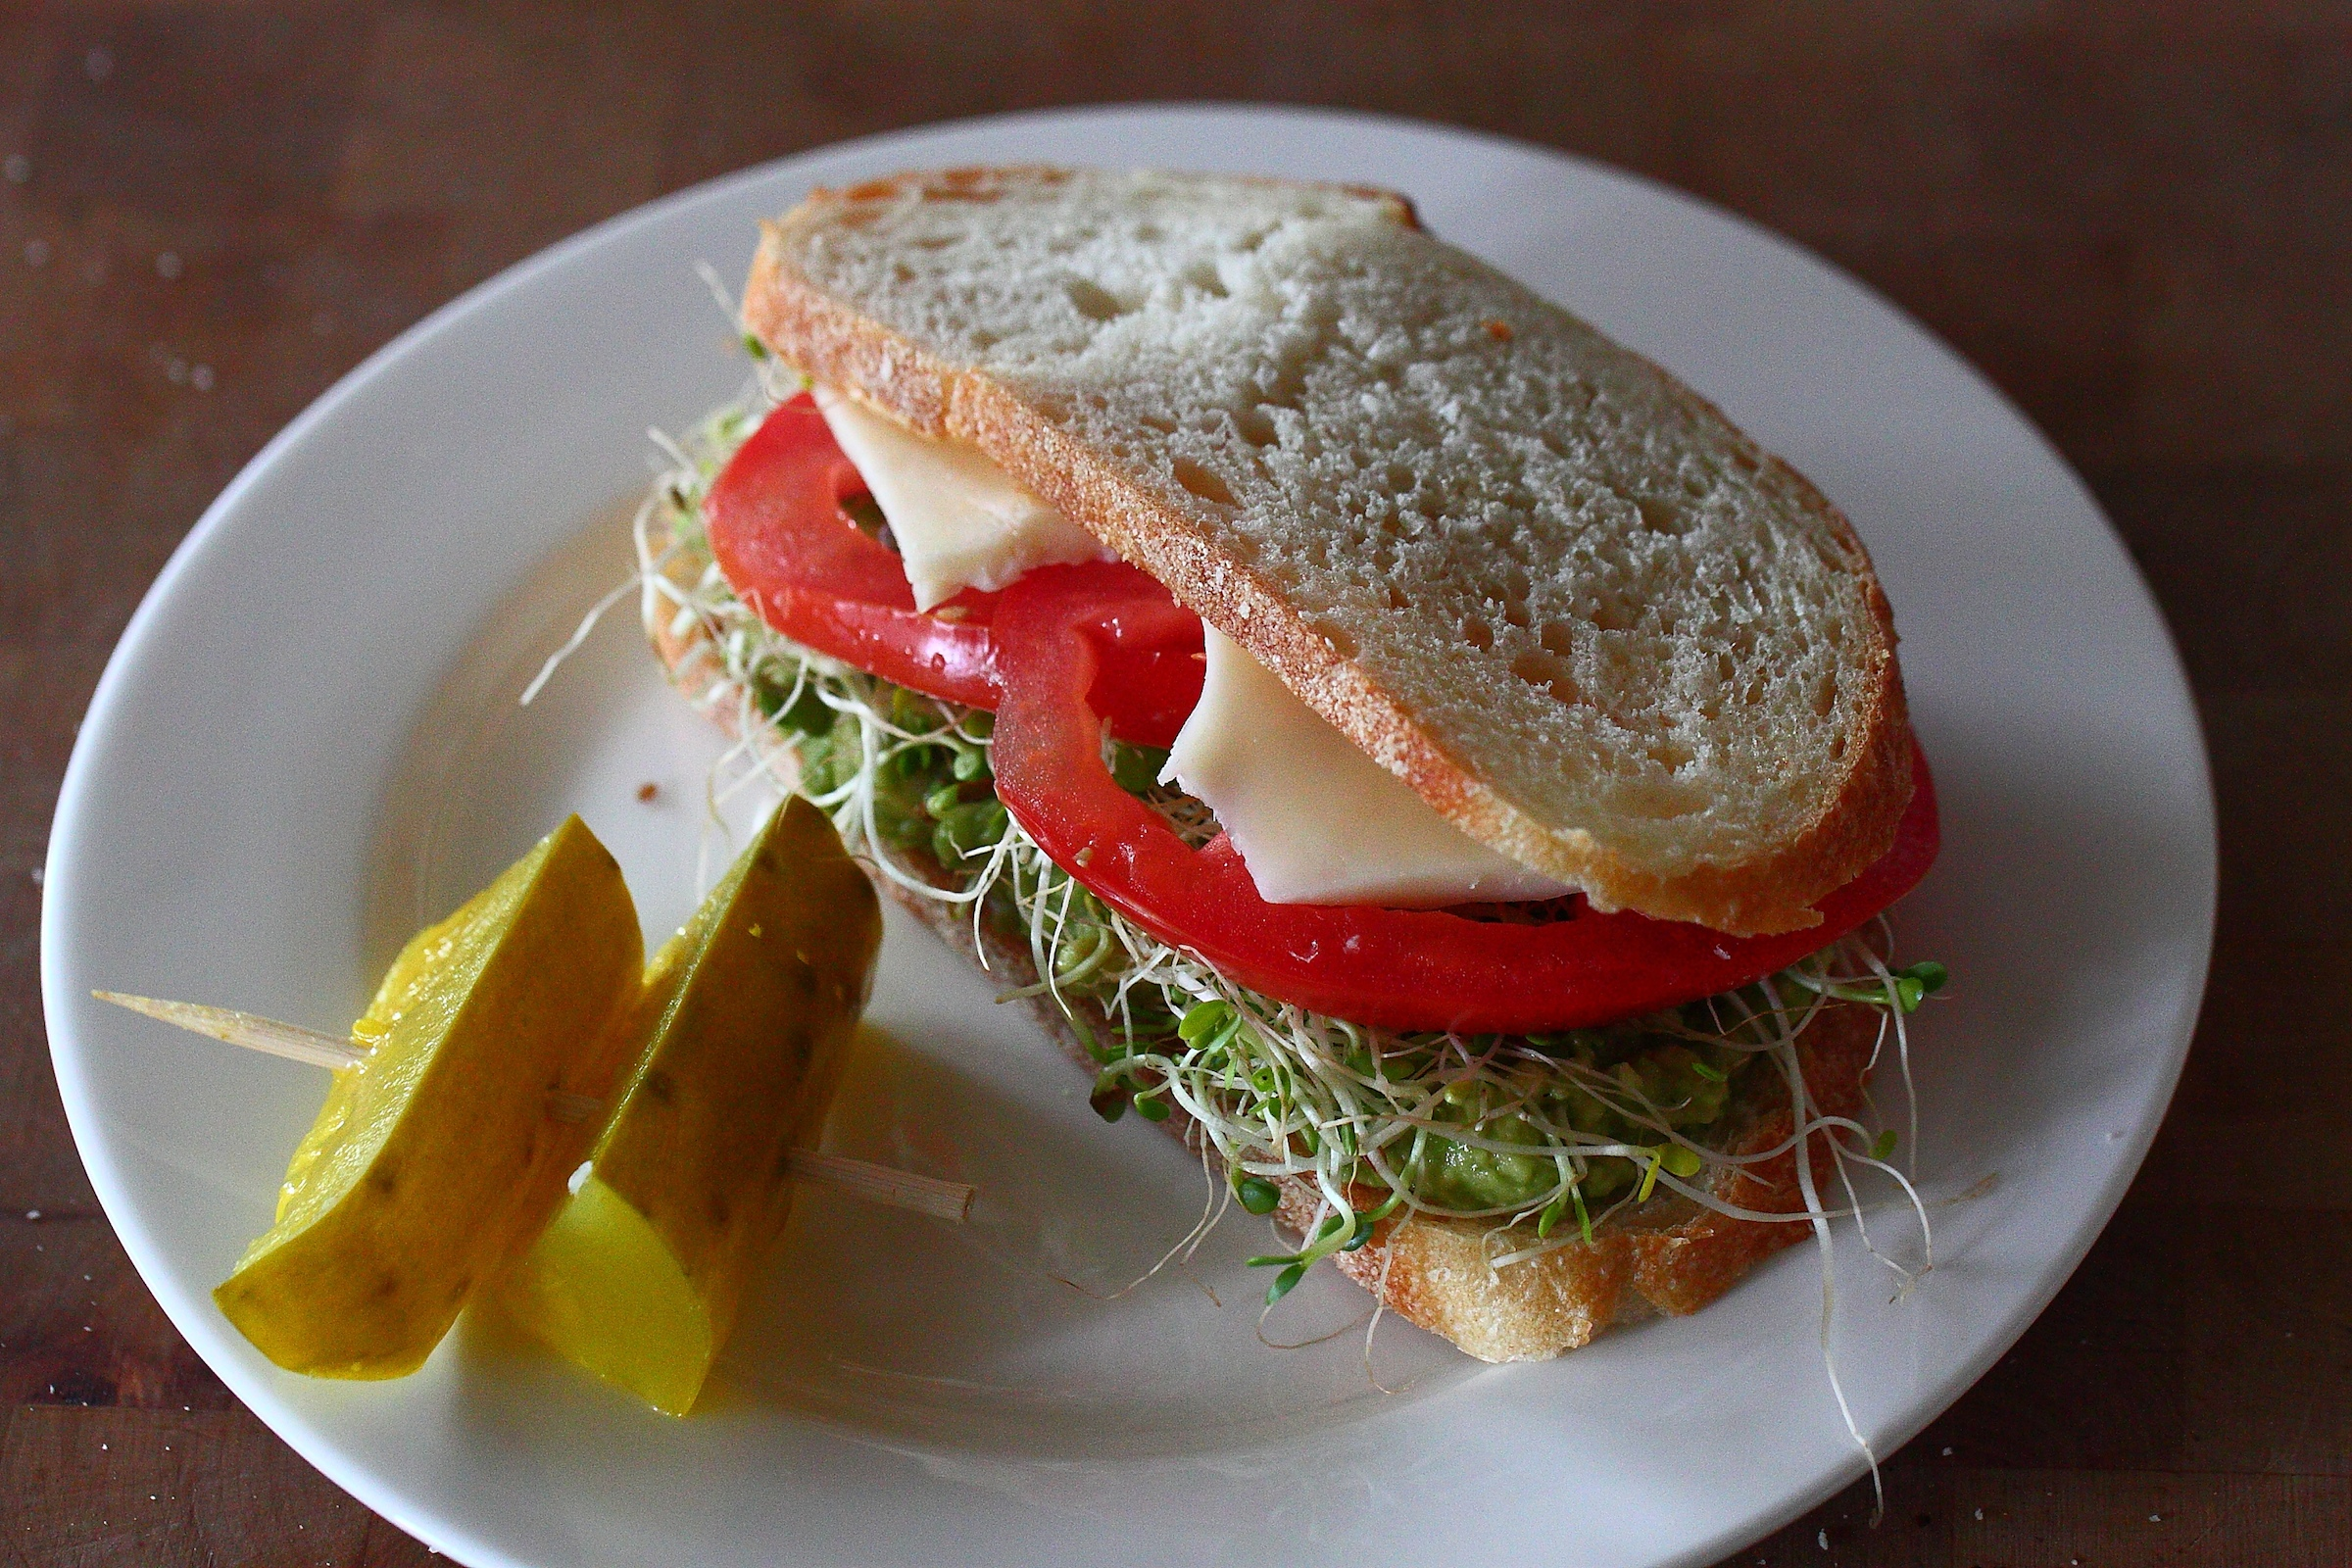 Salted Tomato and Avocado Sandwich with Spicy Aioli